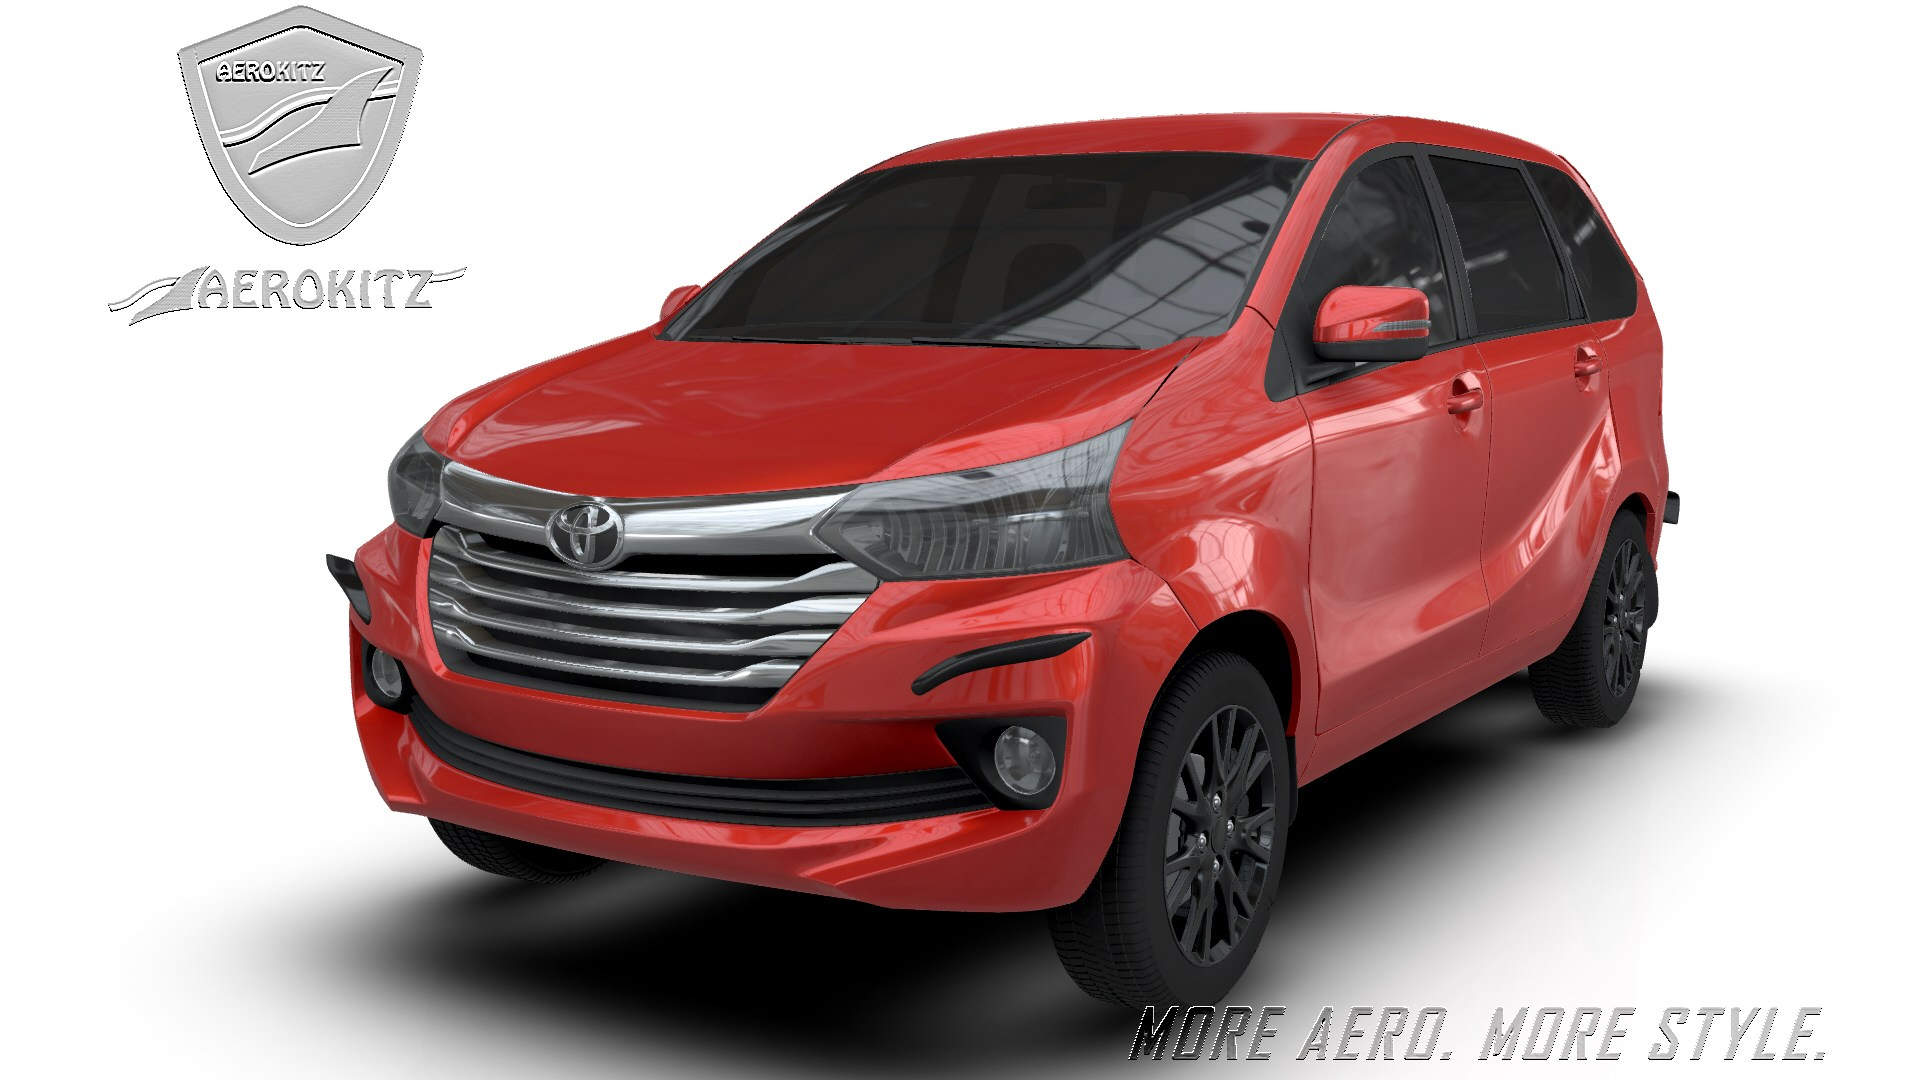 kompresi grand new avanza 2016 veloz 1.5 84 modifikasi mobil 2017